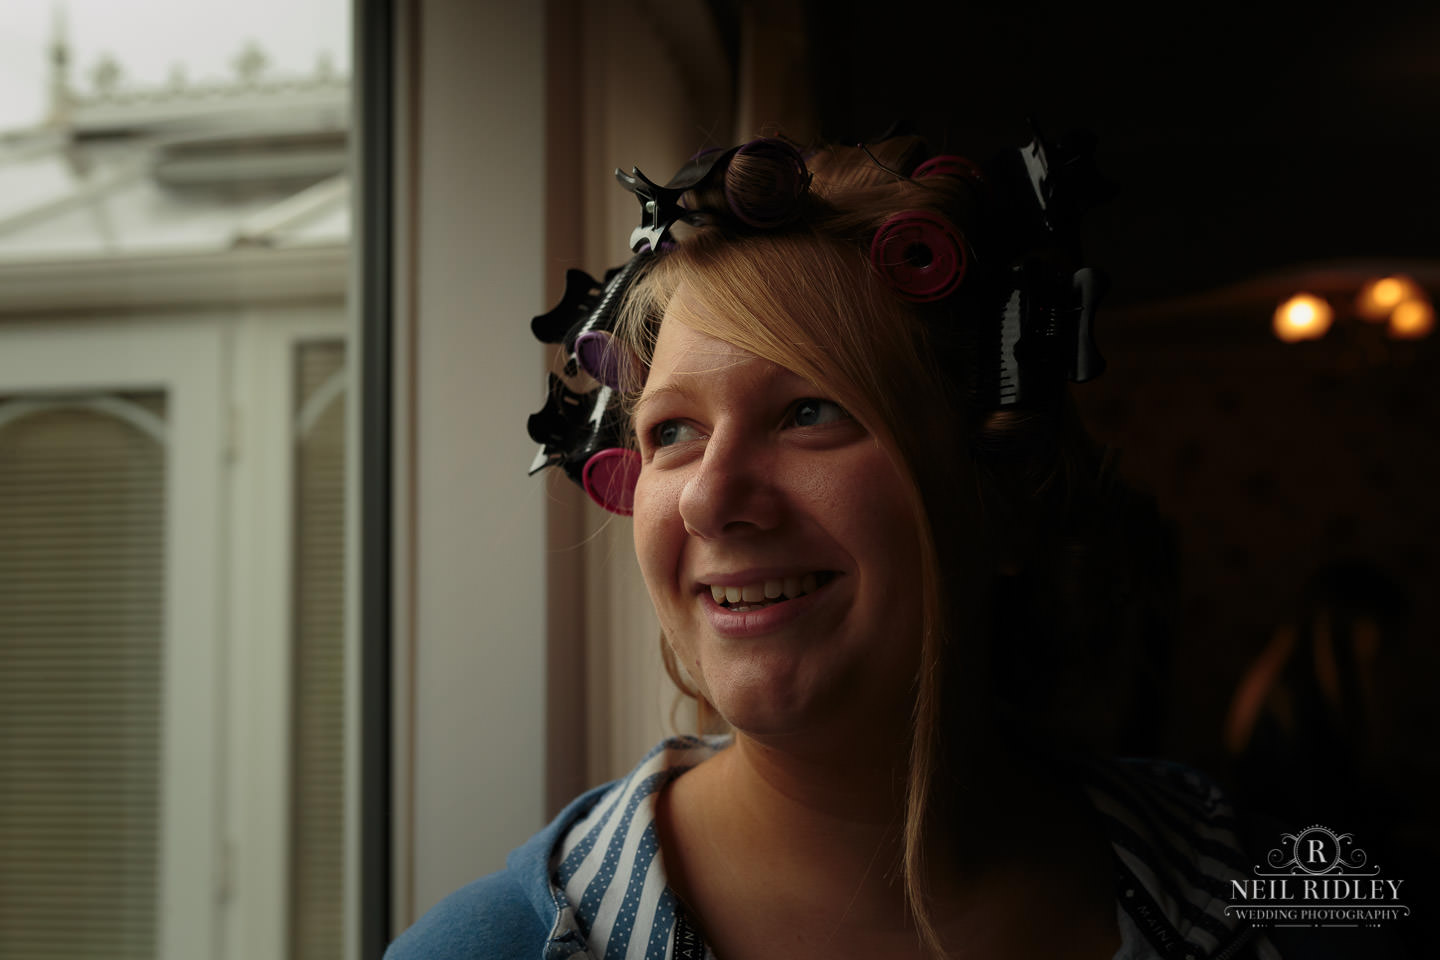 Bride with Curlers in her hair looking out of window during Bridal Prep